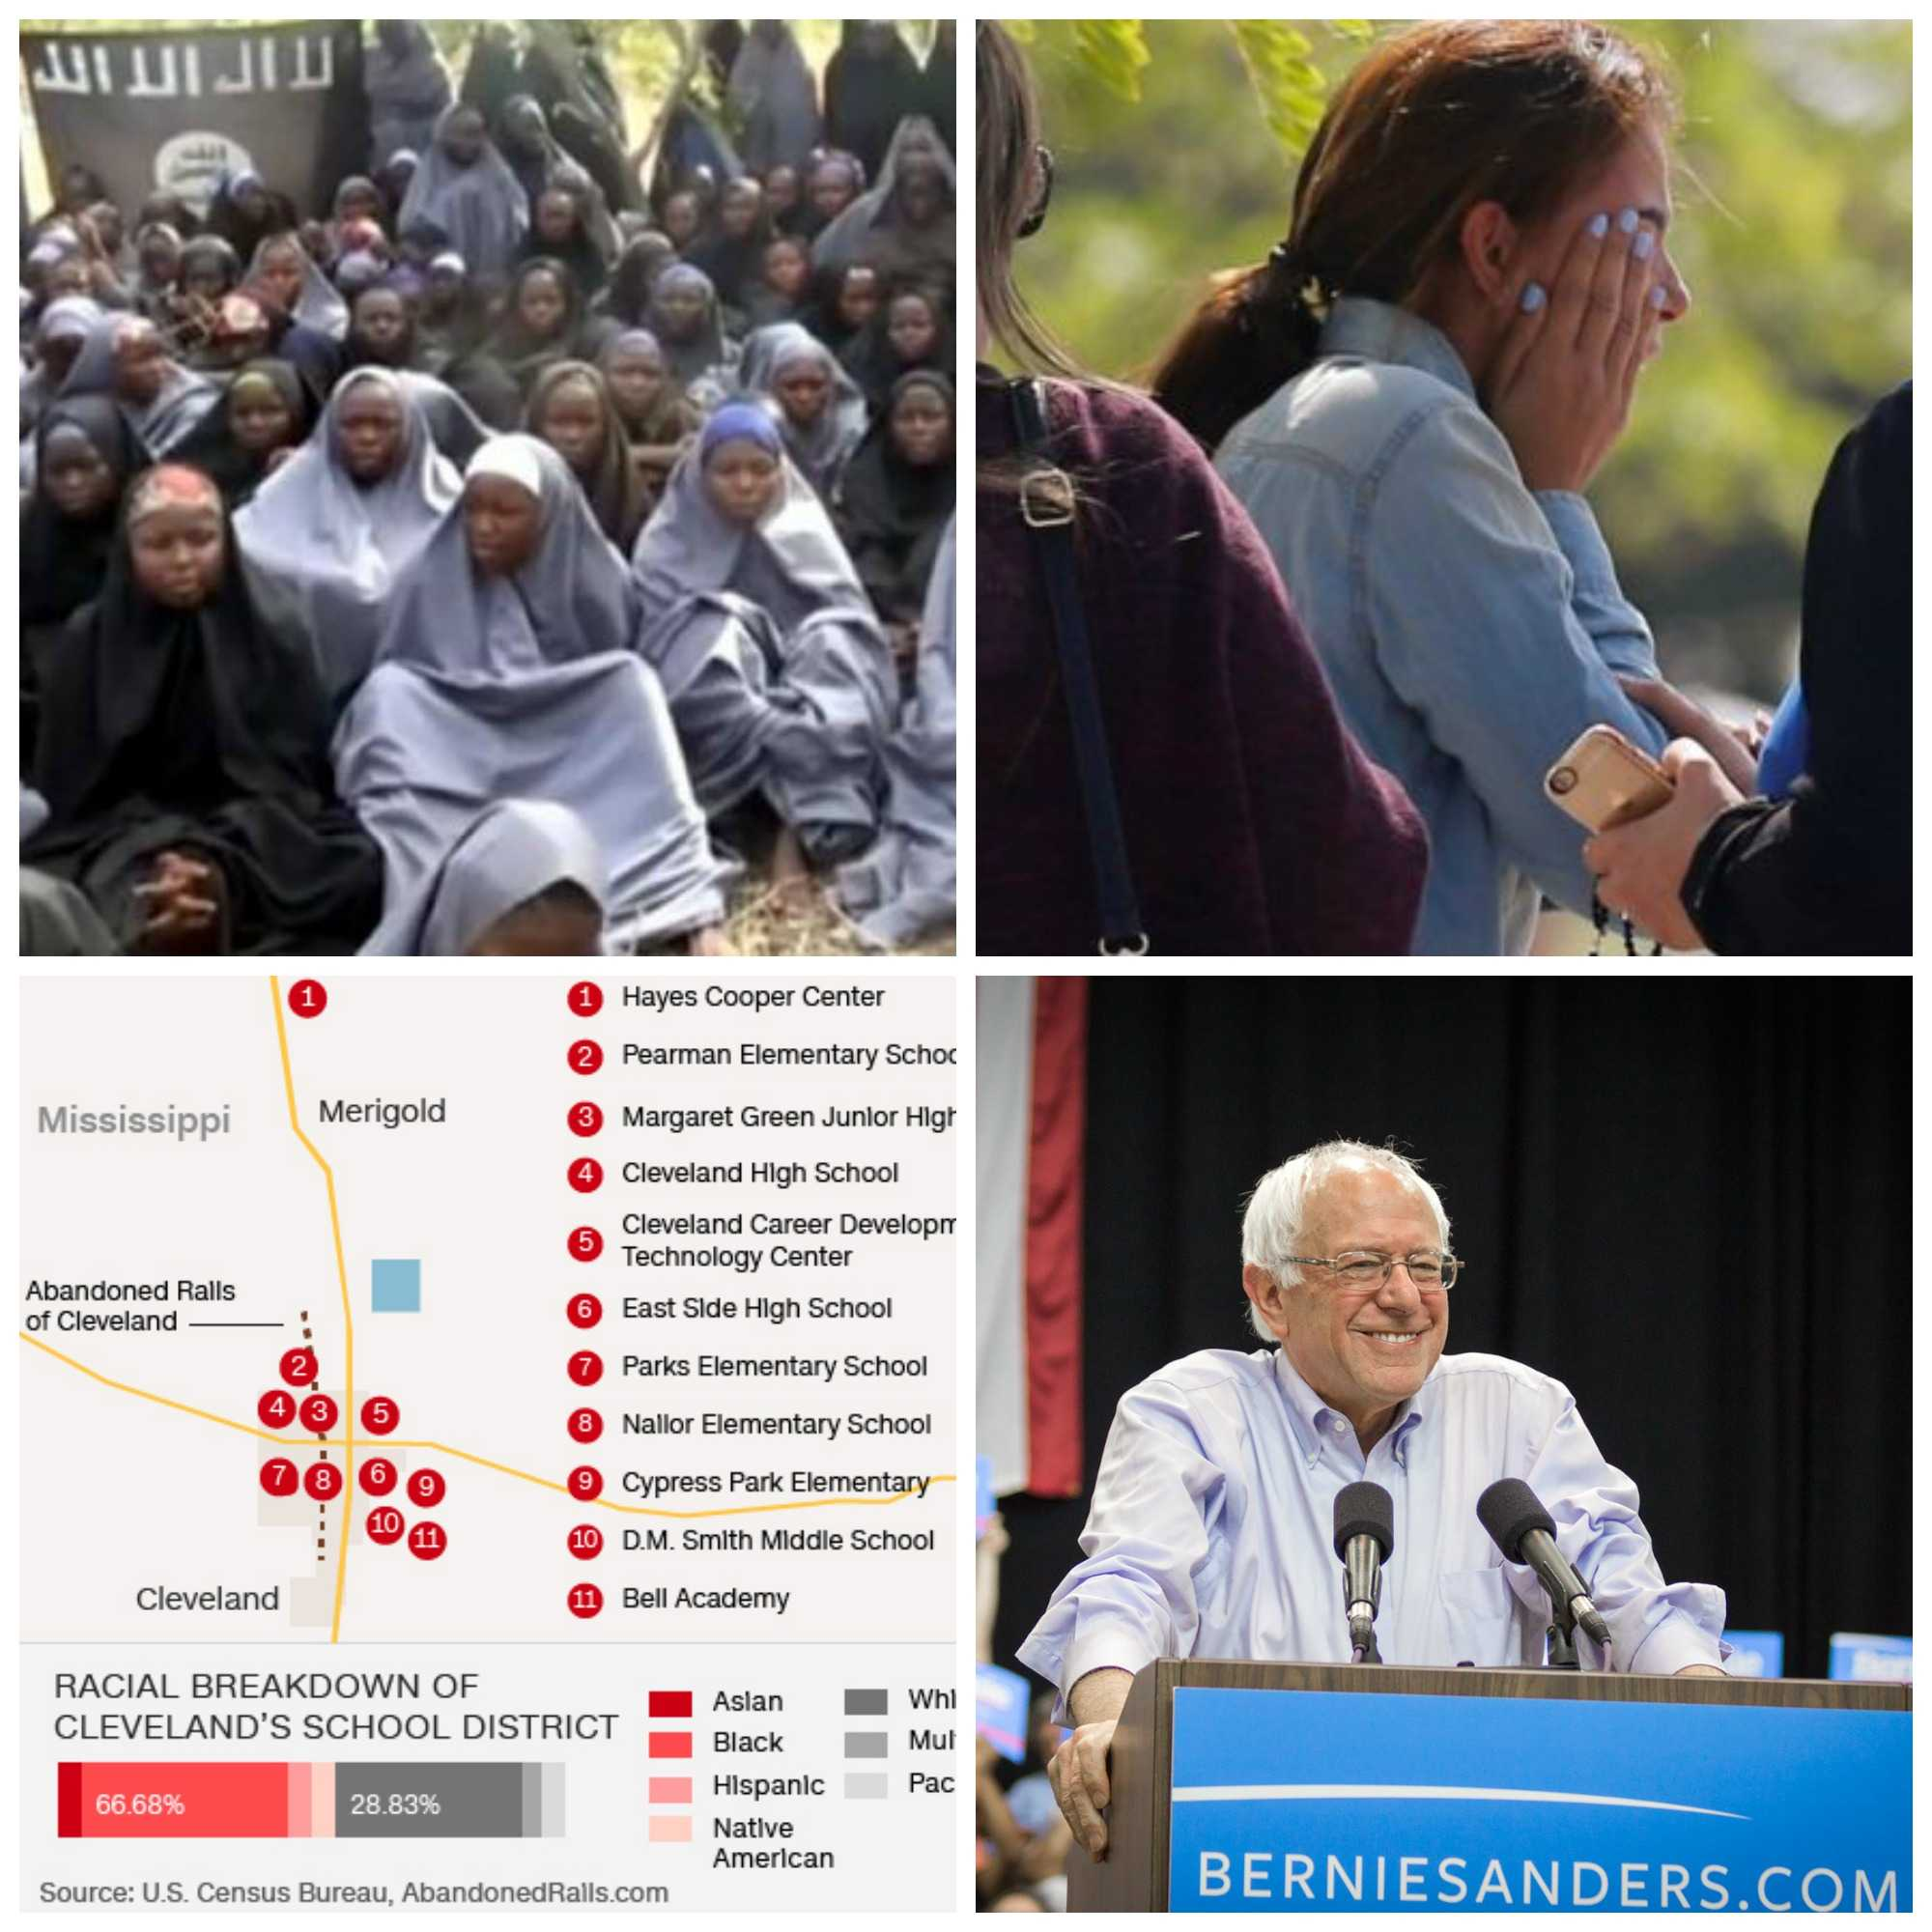 In news this week: Chibok girls found, Egyptair flight goes down in the Mediterranean, desegregation ruling in Mississippi and Sanders versus the DNC.